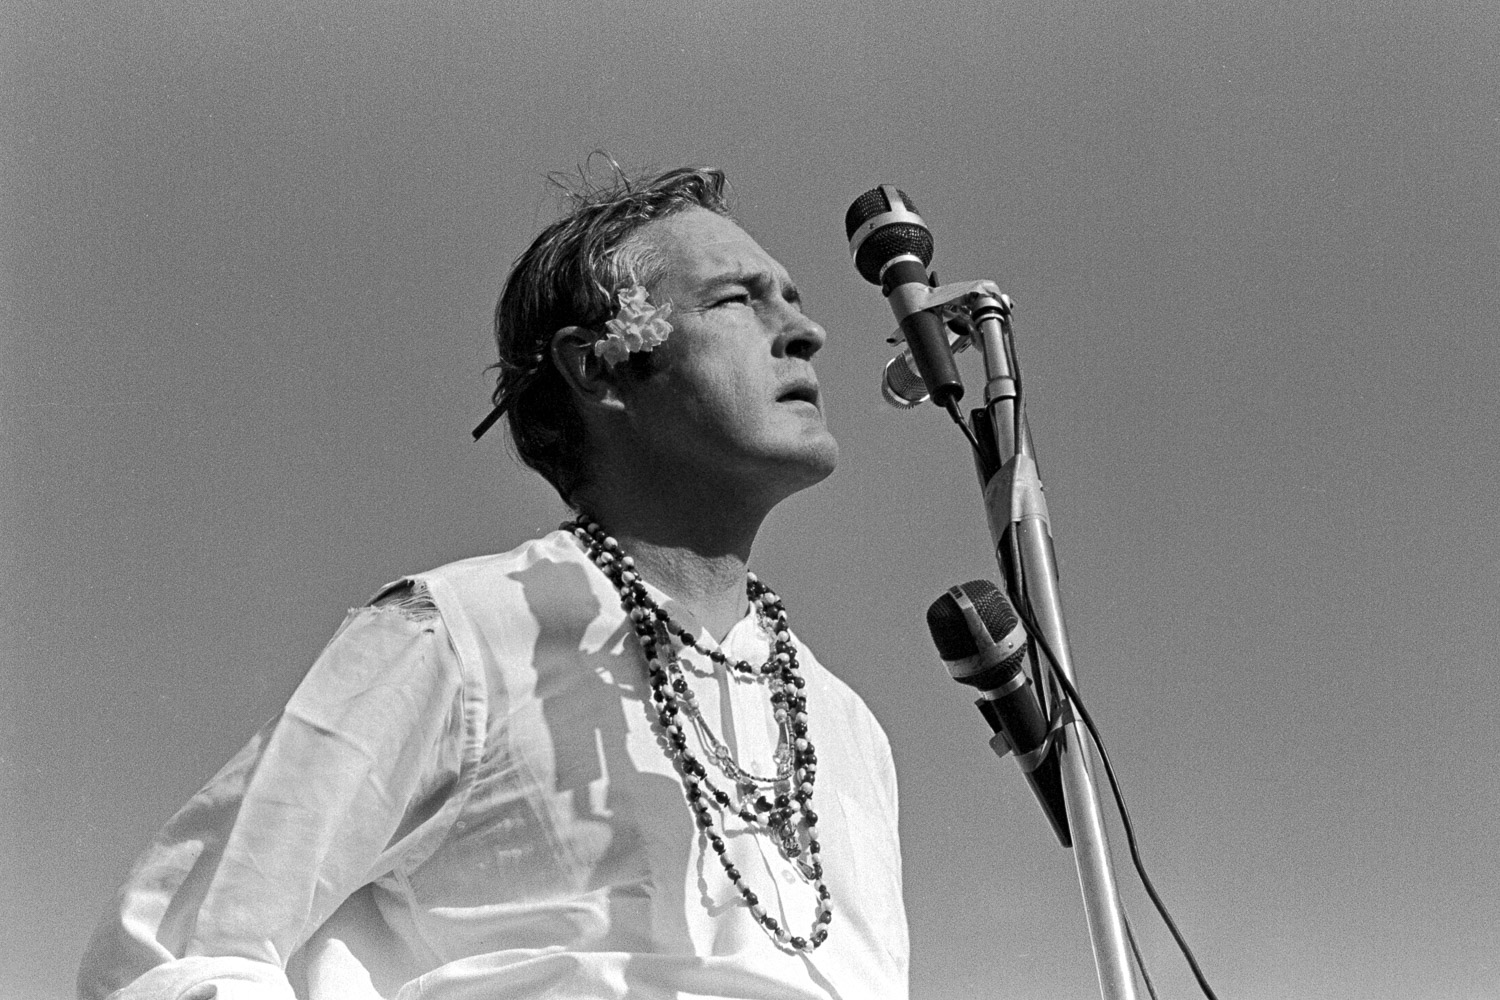 Timothy Leary  advocated turning on, tuning in and dropping out. He had come a long way from his days as a professor at UC Berkeley and as a lecturer at Harvard.